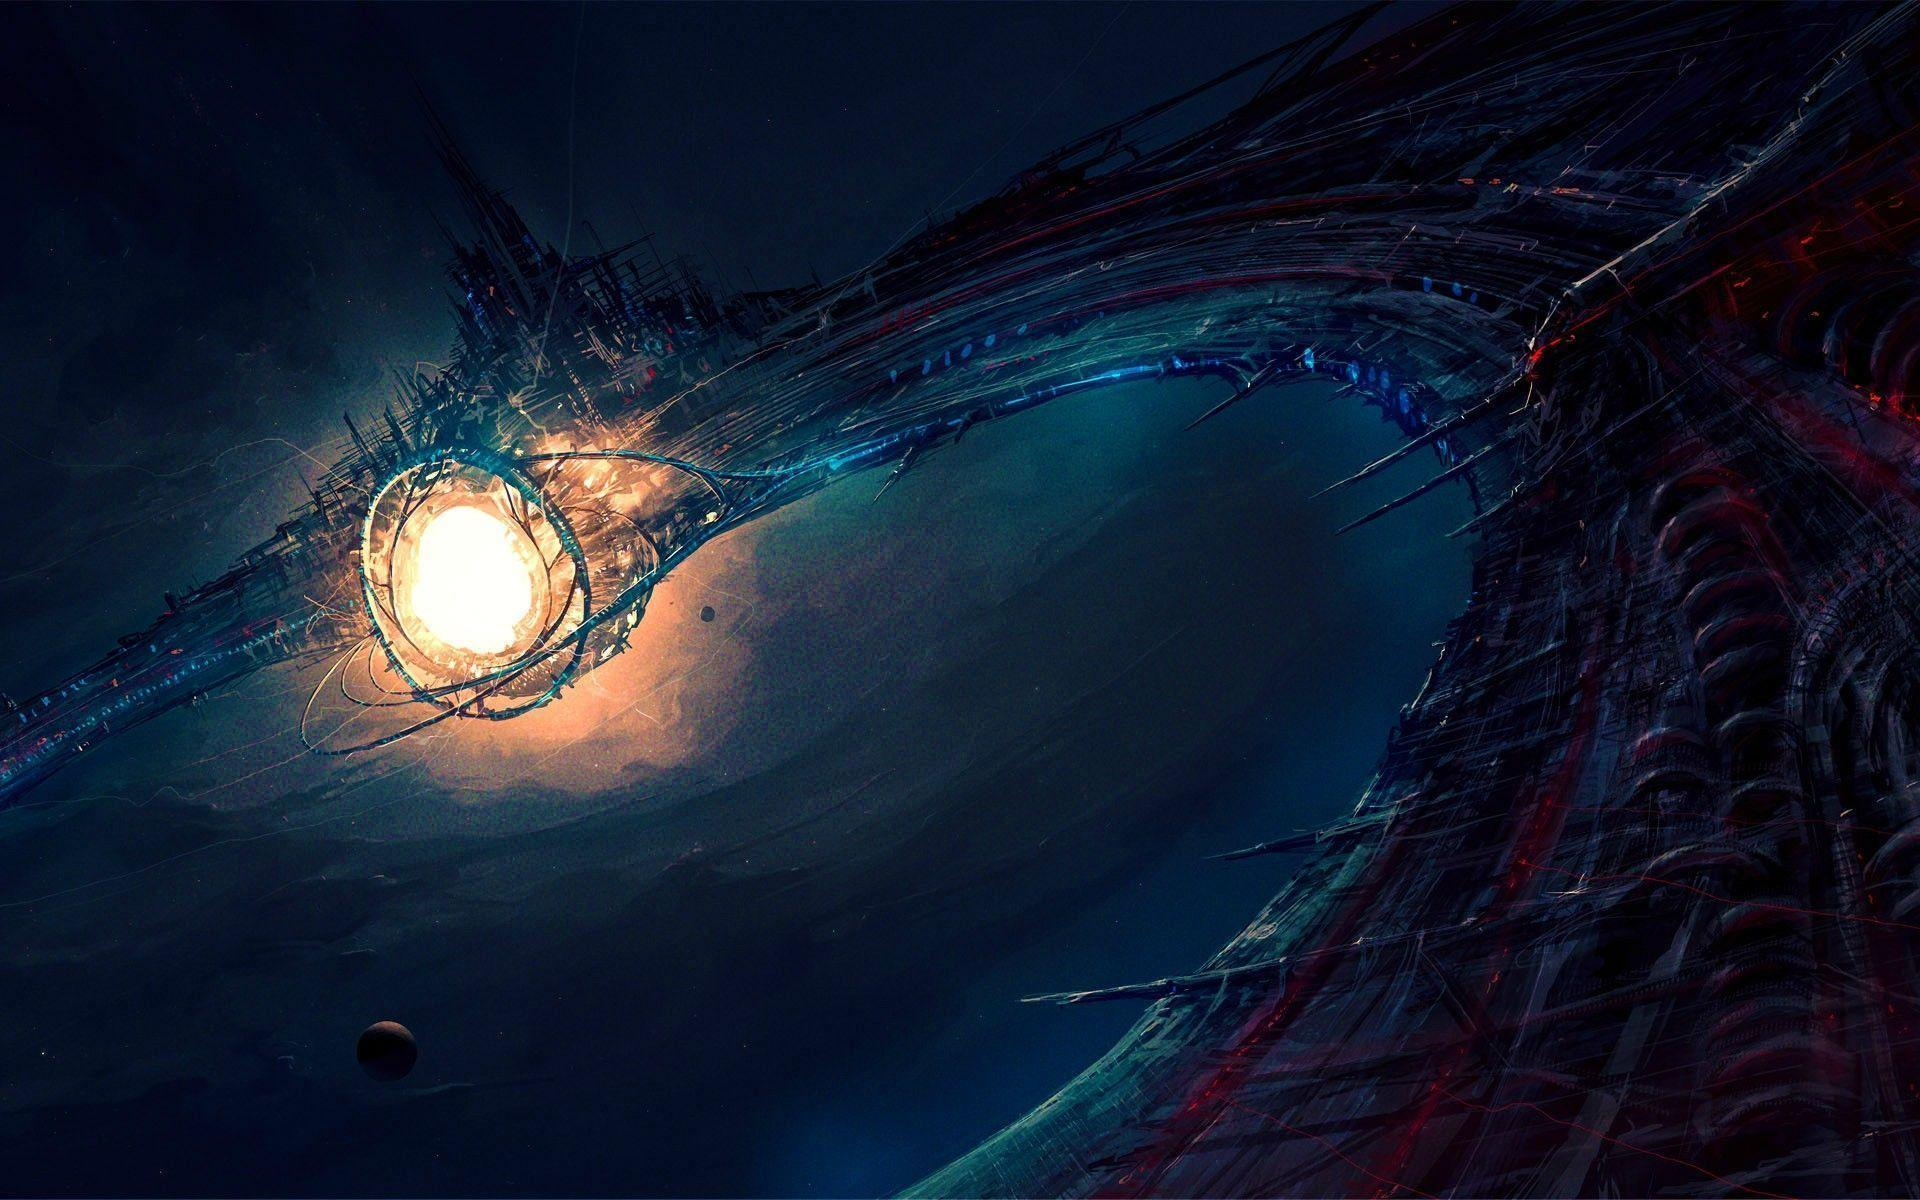 Space Fantasy Wallpapers - Wallpaper Cave